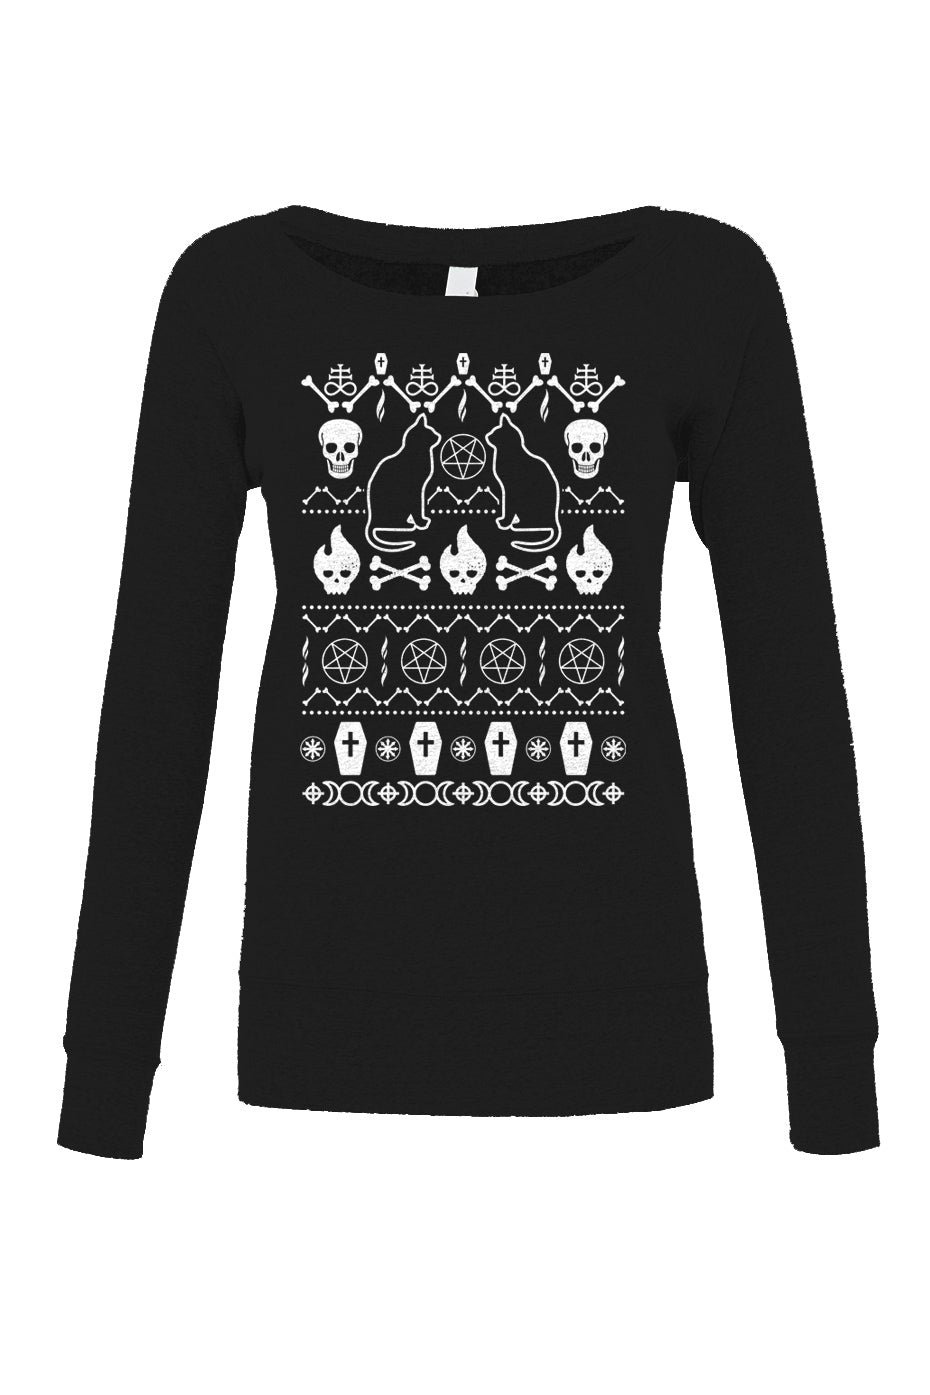 Women's Goth Ugly Christmas Sweater Scoop Neck Fleece - Ugly Holiday Sweater